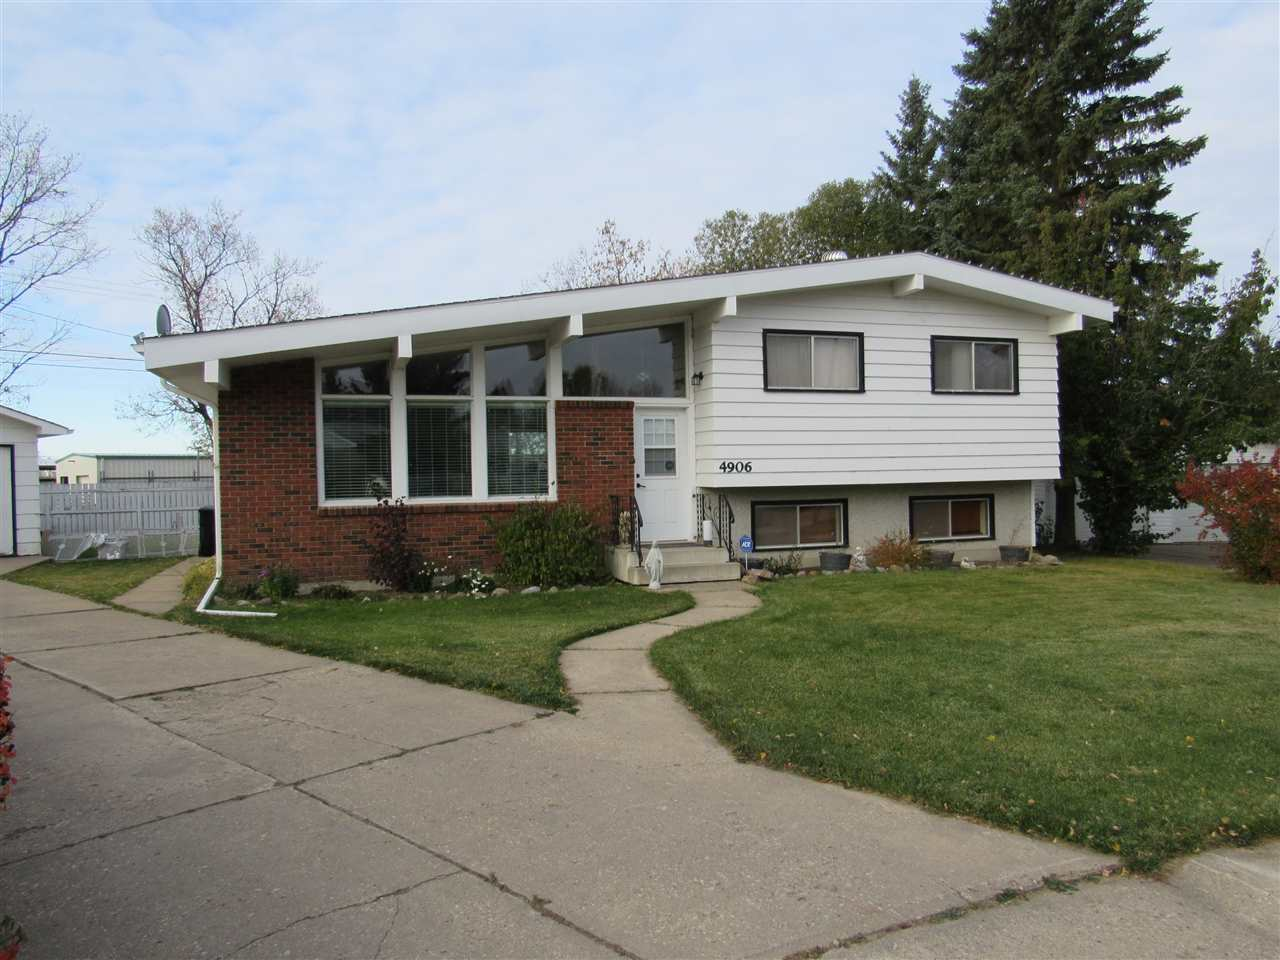 Great location in a quiet cul de sac close to downtown. Nice layout with the main level consisting of the newly renovated kitchen, dining area and a big and bright living room. The upper level has the main bath and 3 nice sized bedrooms and a half bath ensuite. The lower level has a huge family room, one big bedroom and a three piece bath. Plenty of storage in the basement. Outside the home is very attractive with brick, composite siding and stucco. The single garage has an opener and a work counter. The corner lot provides a huge back yard and no rear neighbors. A great family home at an attractive price.